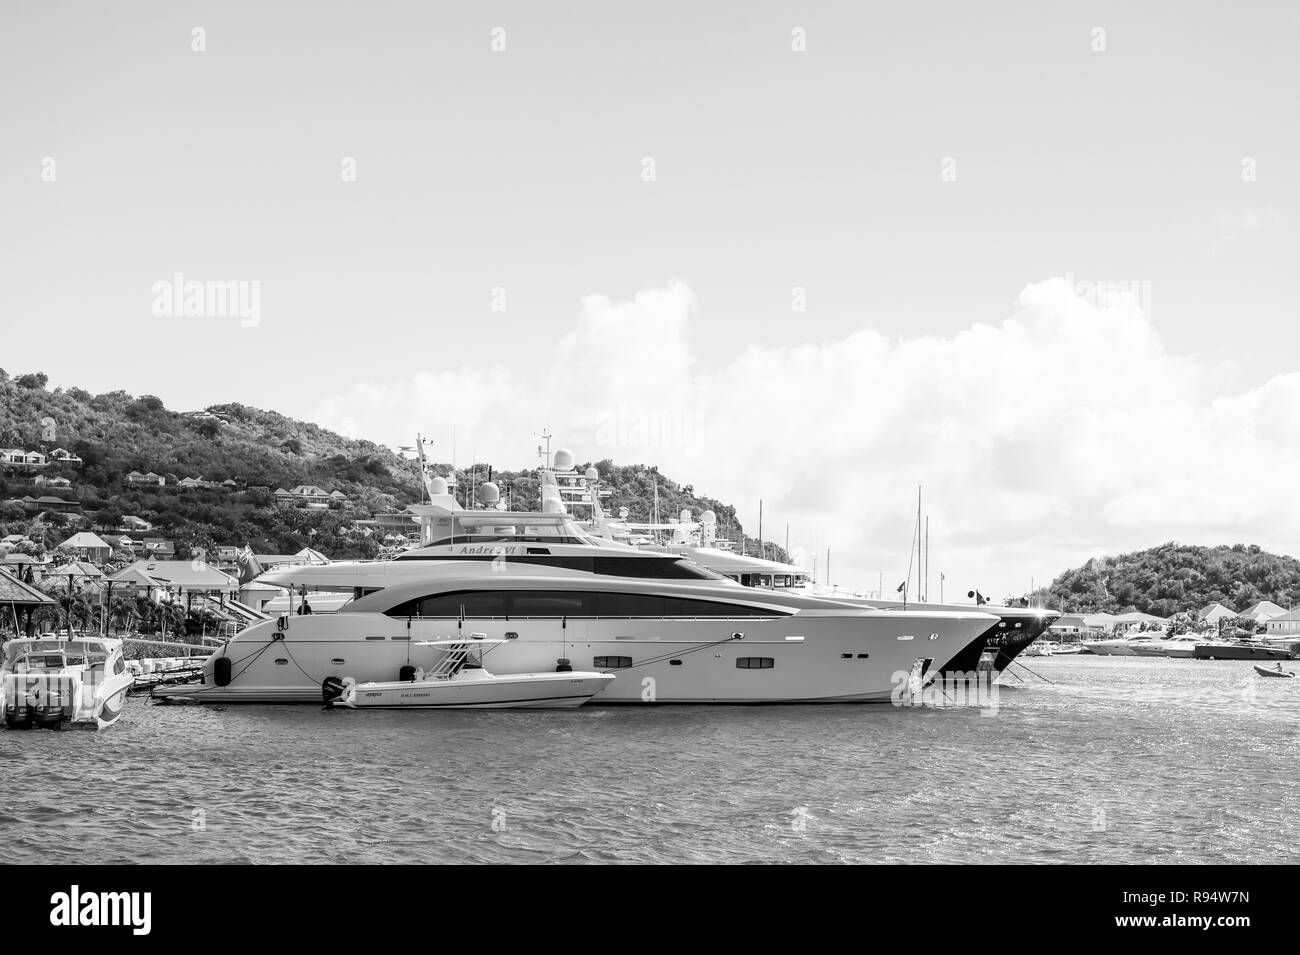 Gustavia, st.barts - January 25, 2016: yachts anchored at sea pier on tropical beach. Yachting, luxury travel on yacht. Summer vacation on island wanderlust. Water transport and vessel. - Stock Image